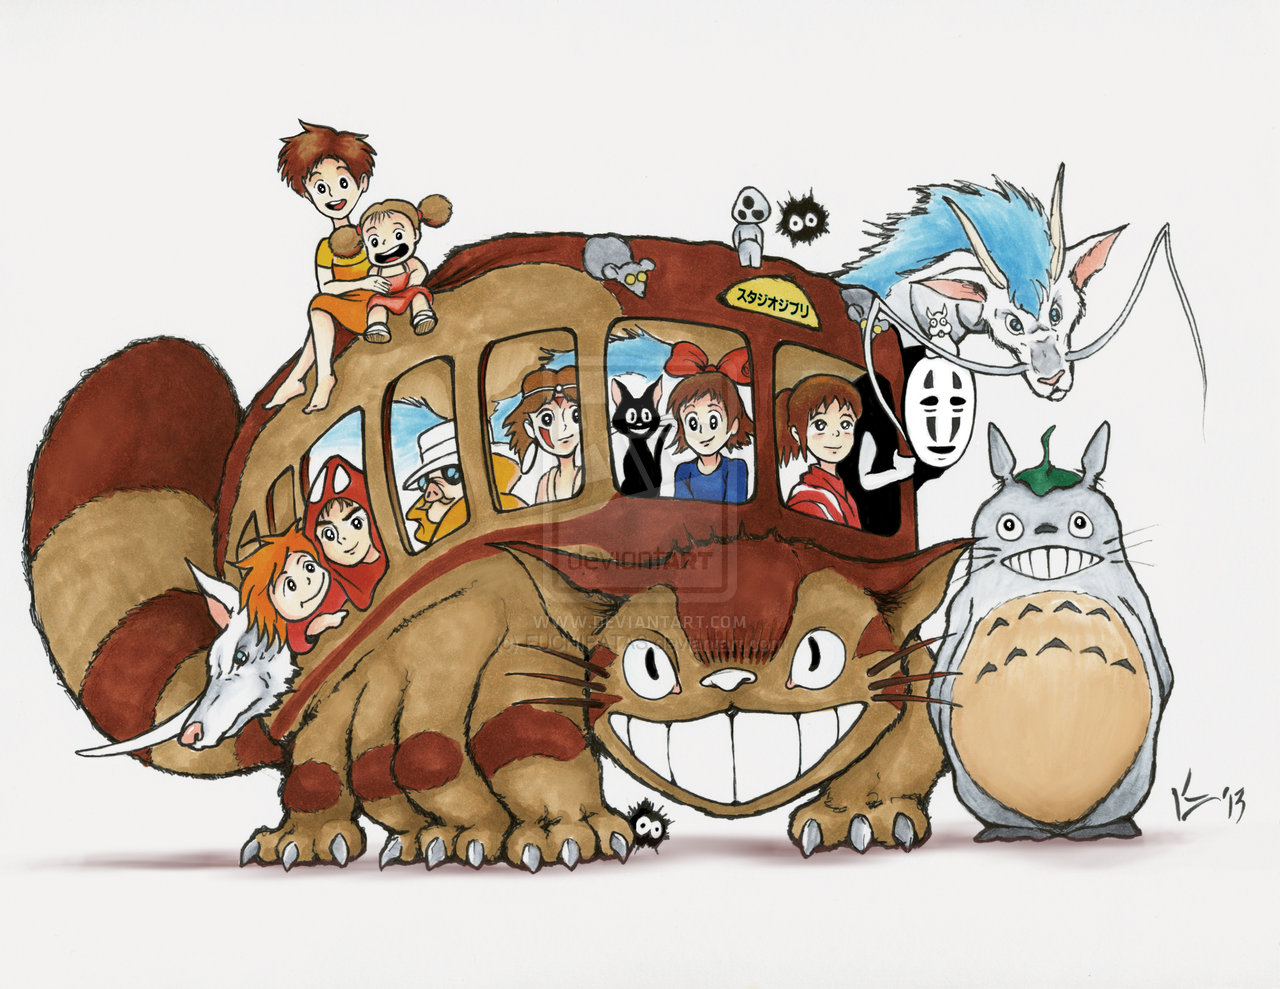 studio_ghibli_catbus_for_aicn_contest_by_fuchipatas-d5yxgxt